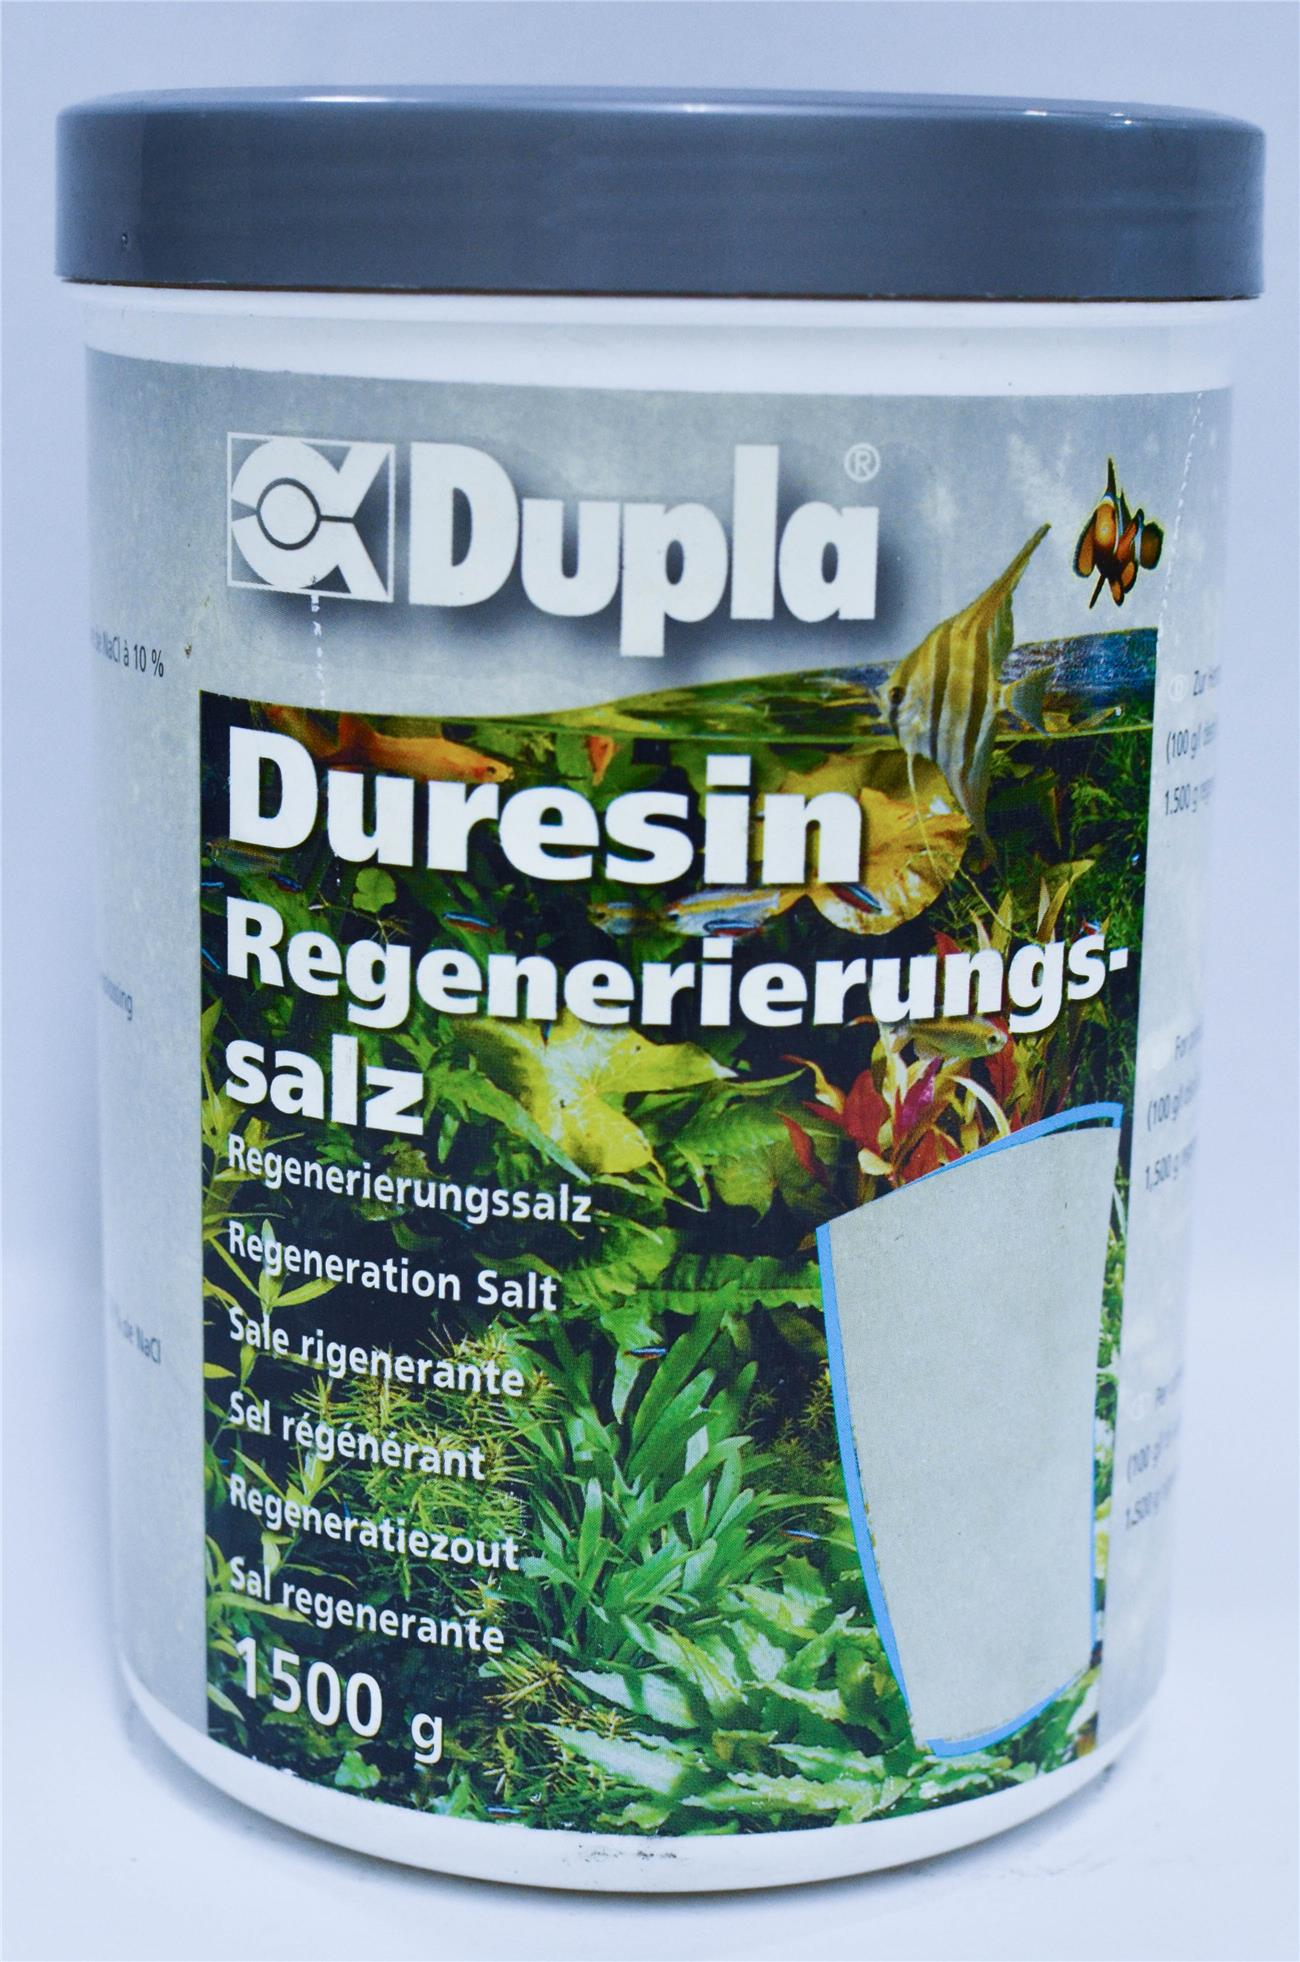 Dupla Duresin Regenerating Salt 1500g